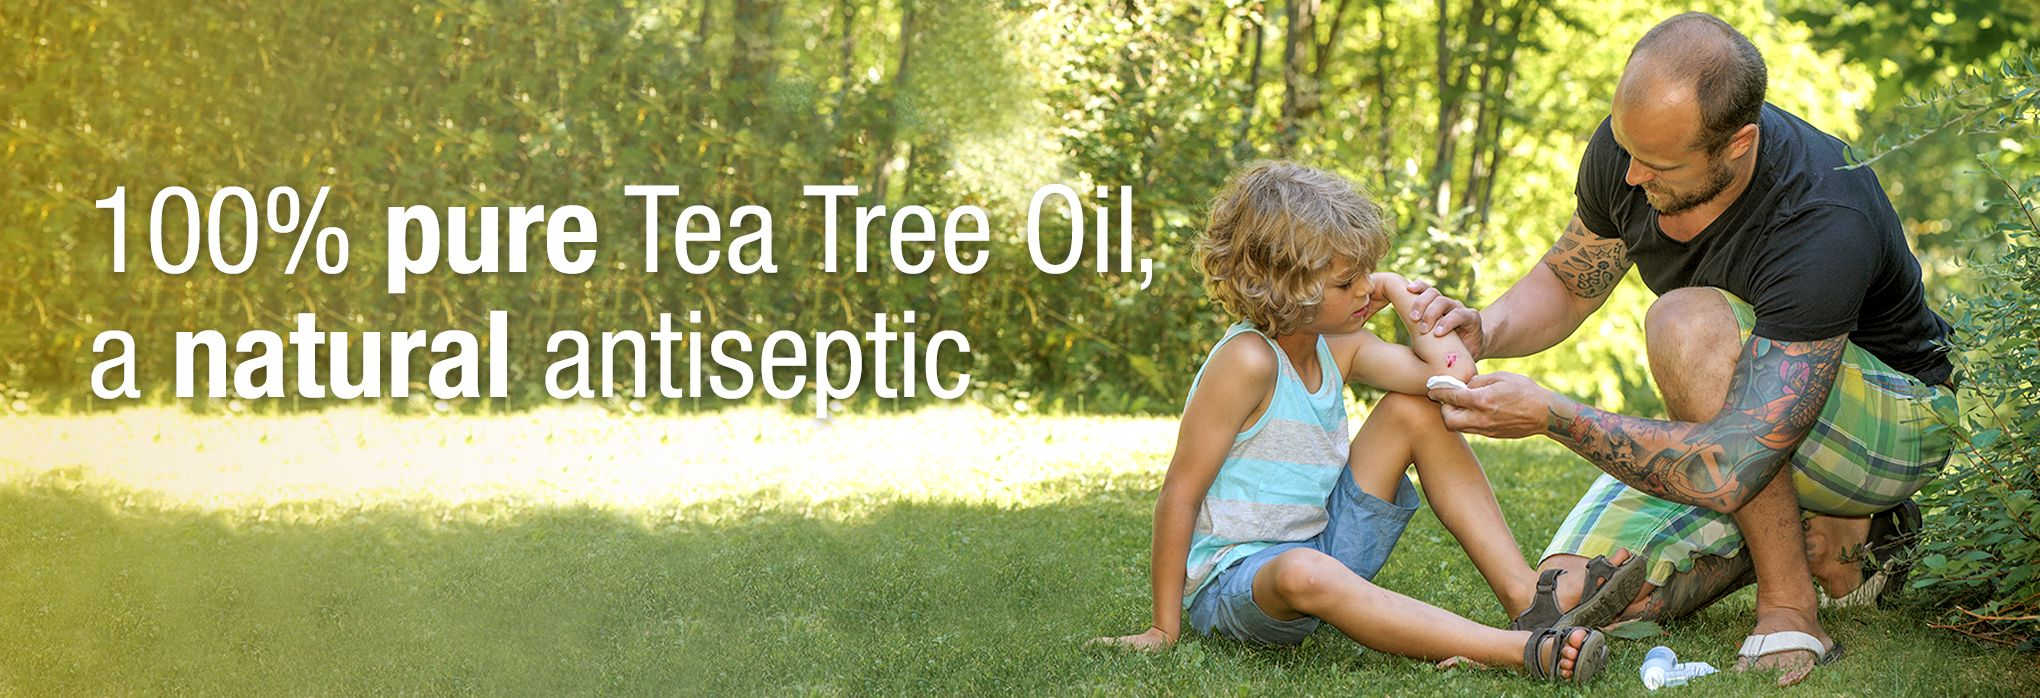 100% pure tea tree oil, a natural antiseptic